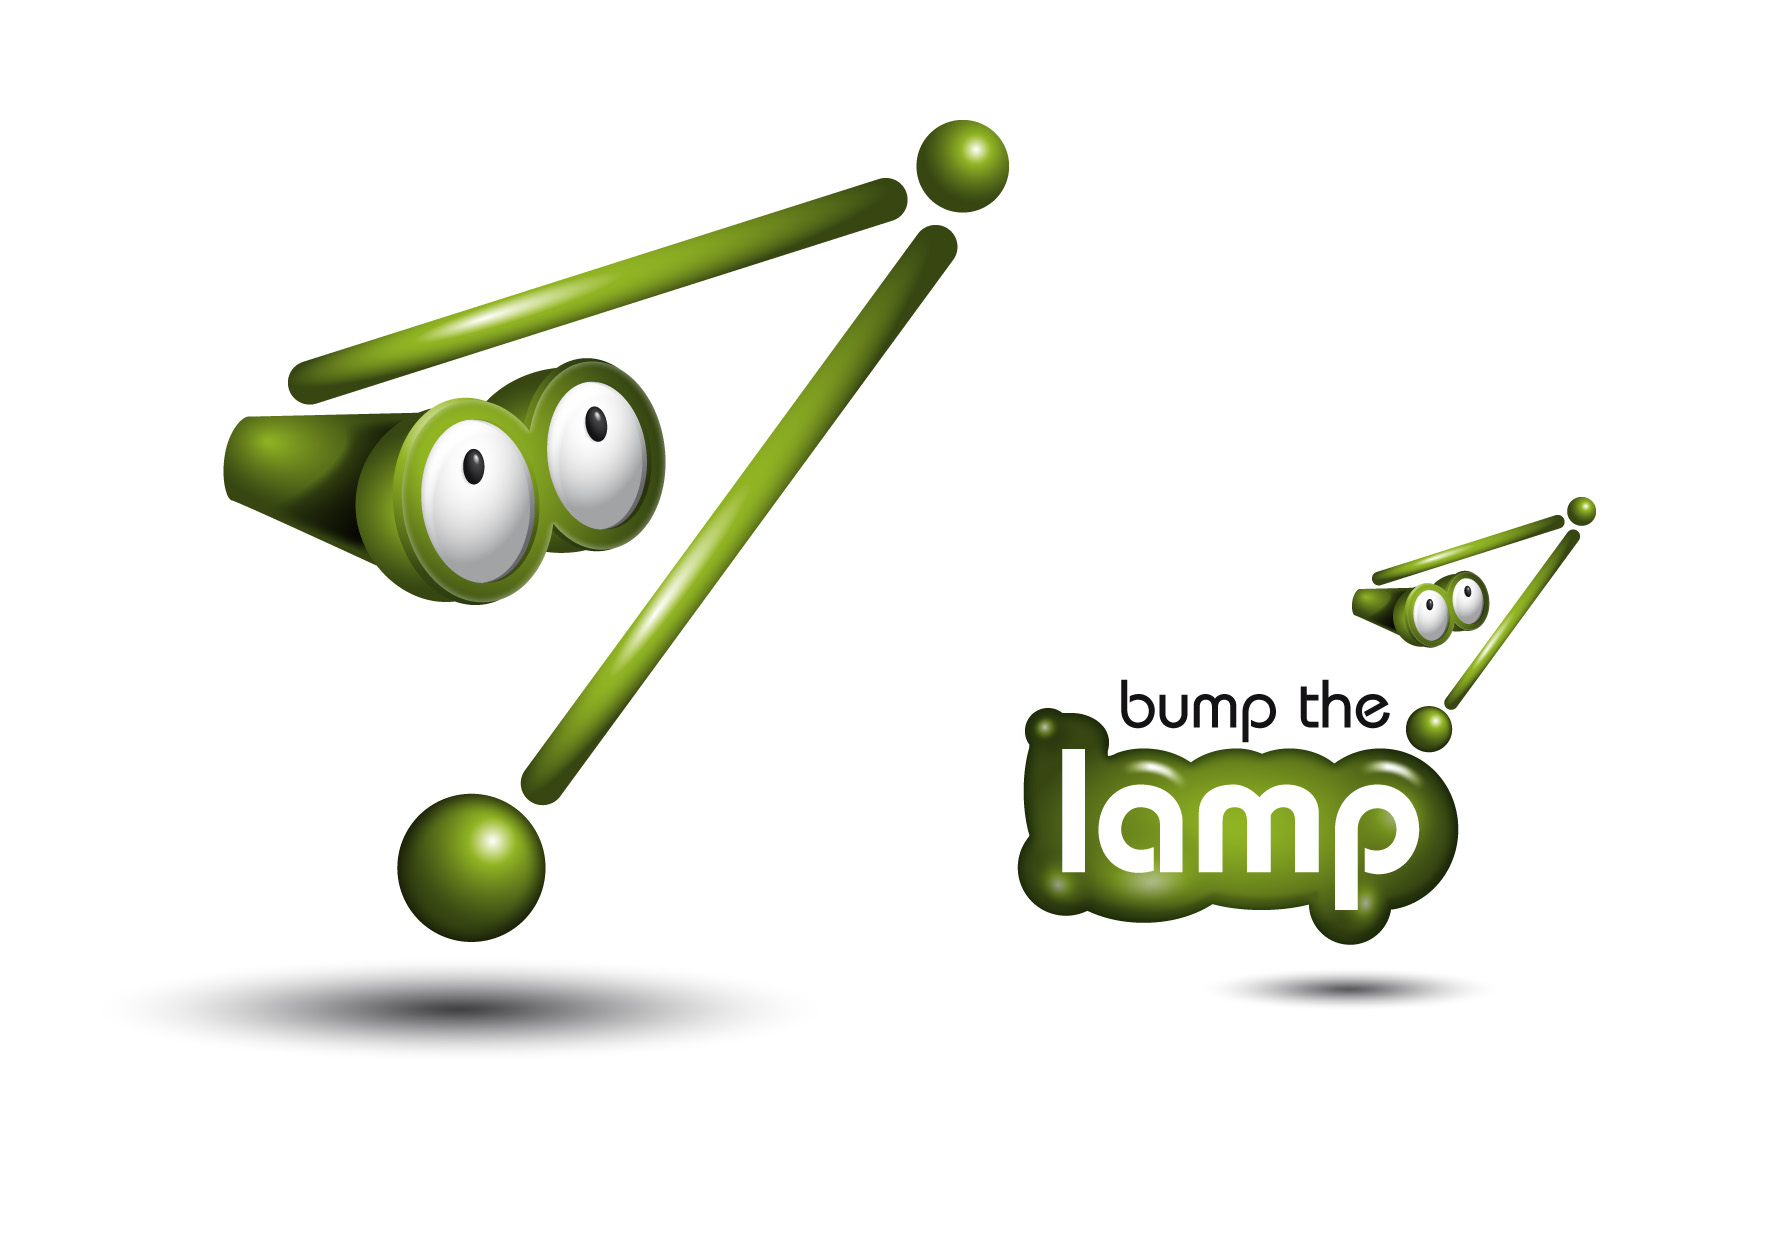 Bump the Lamp